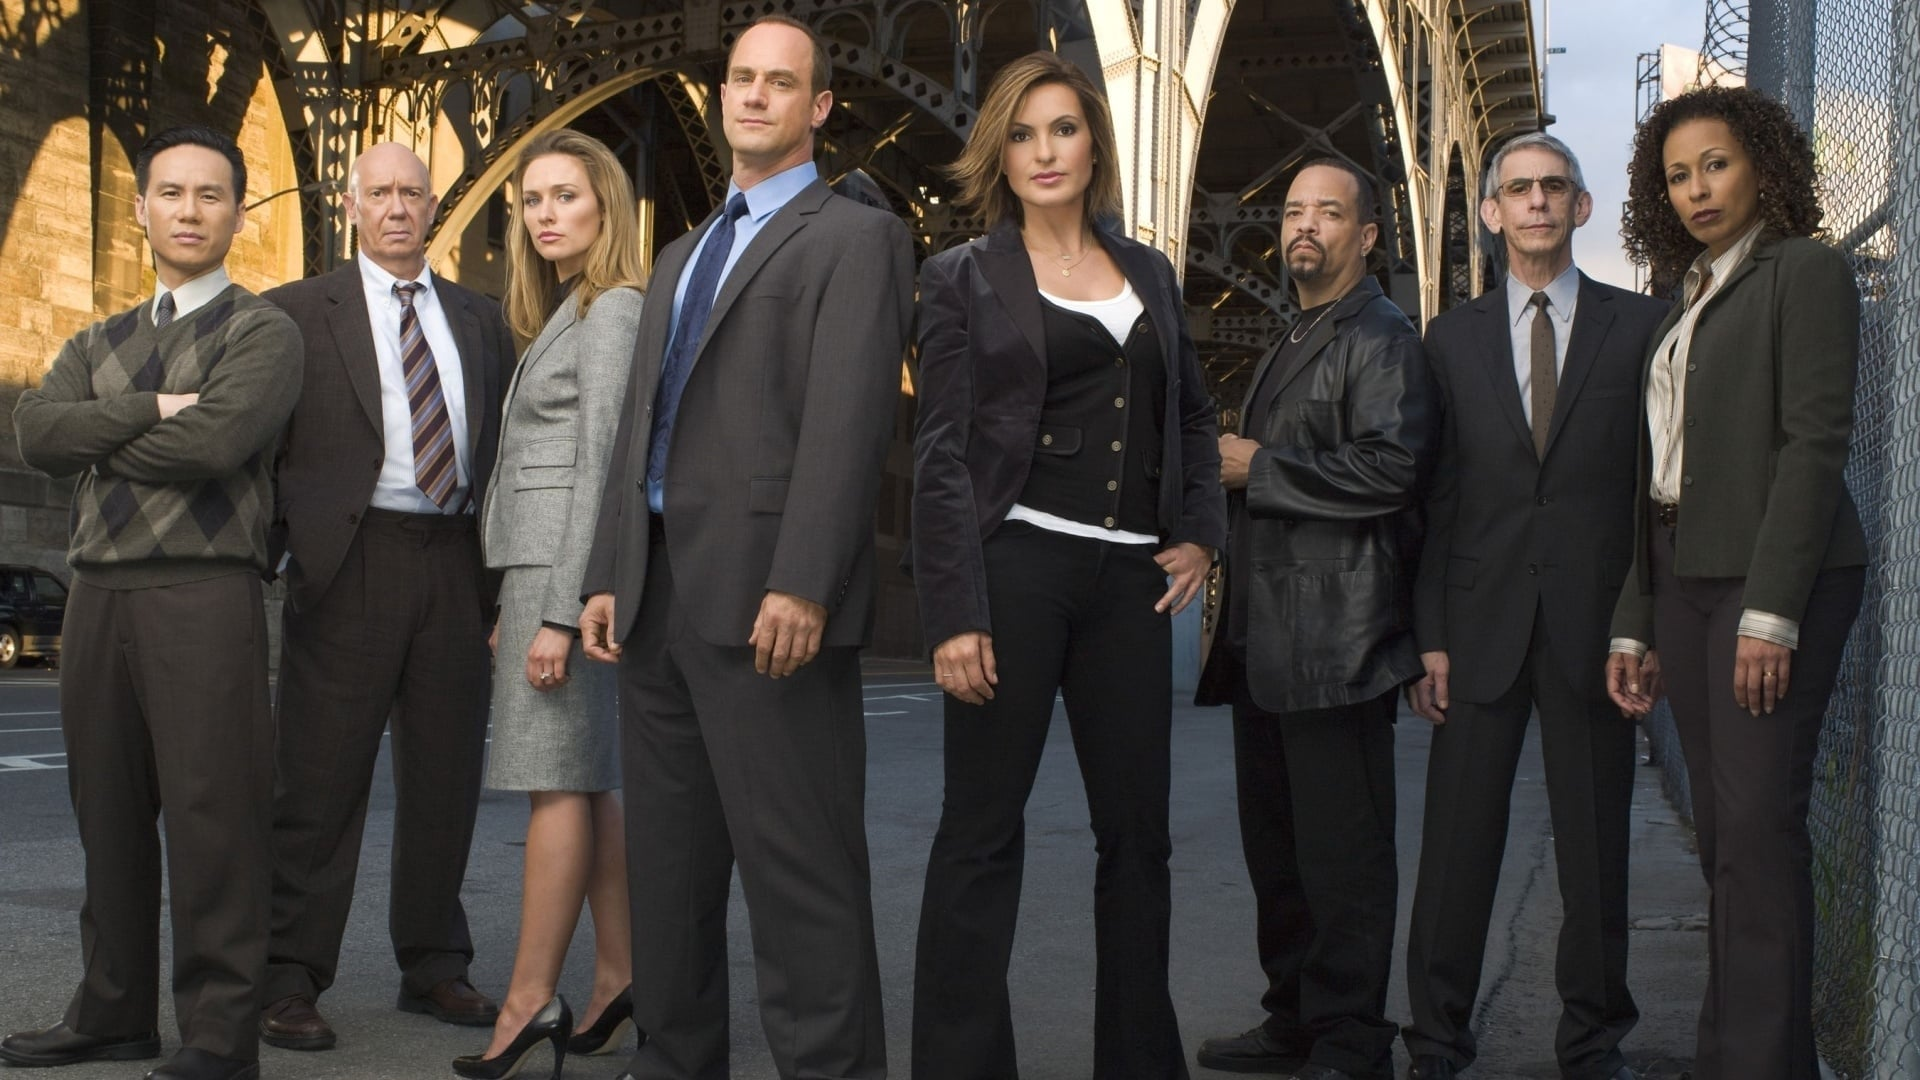 Law & Order: Special Victims Unit - Season 21